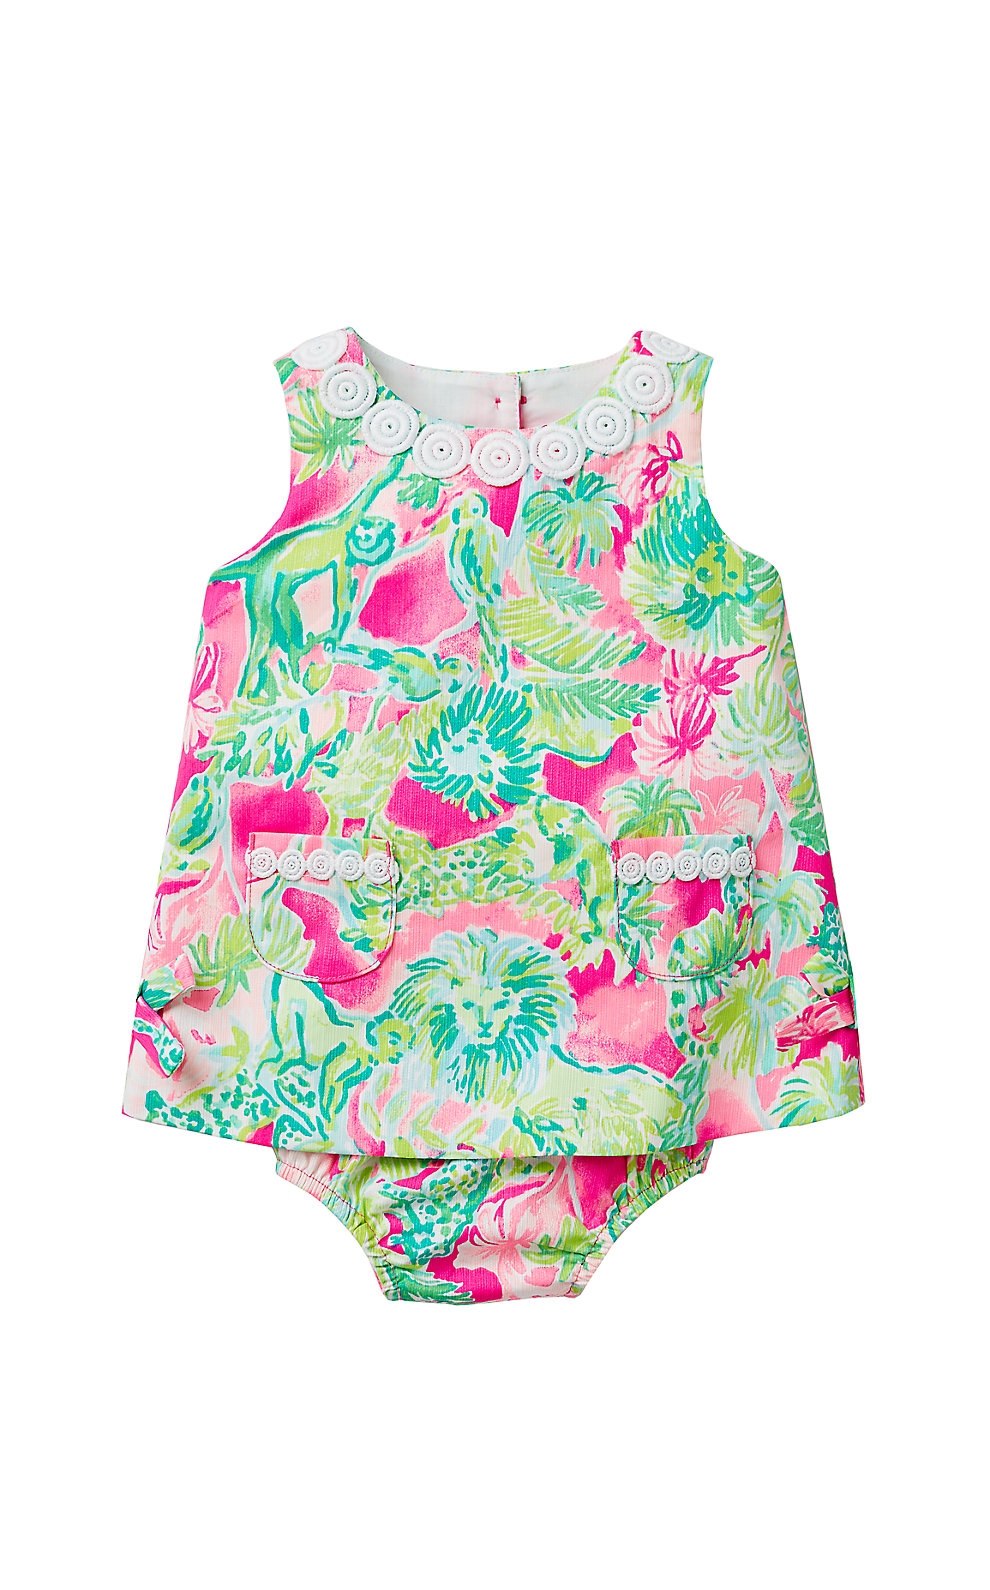 Lilly Pulitzer Baby Lilly Shift